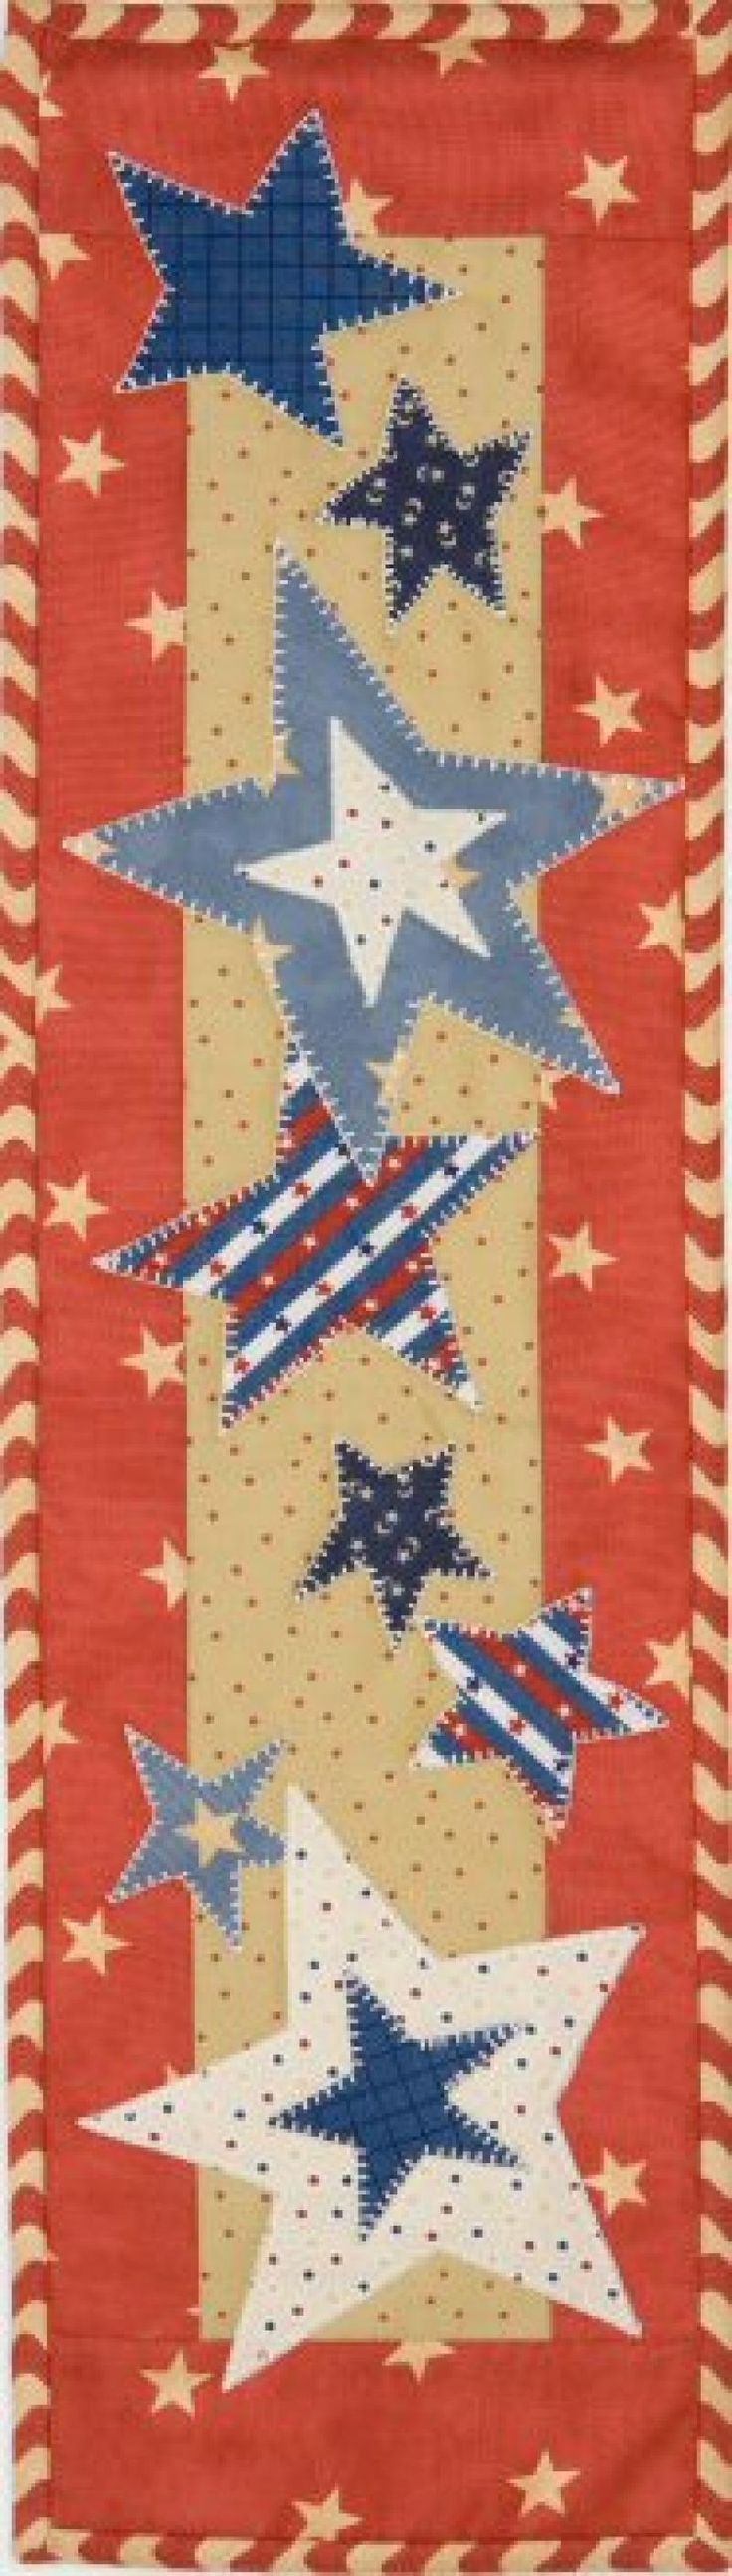 Spools doll quilt table runner wall hanging lyn brown s quilting - A Summer Patriotic Runner With Easy Applique